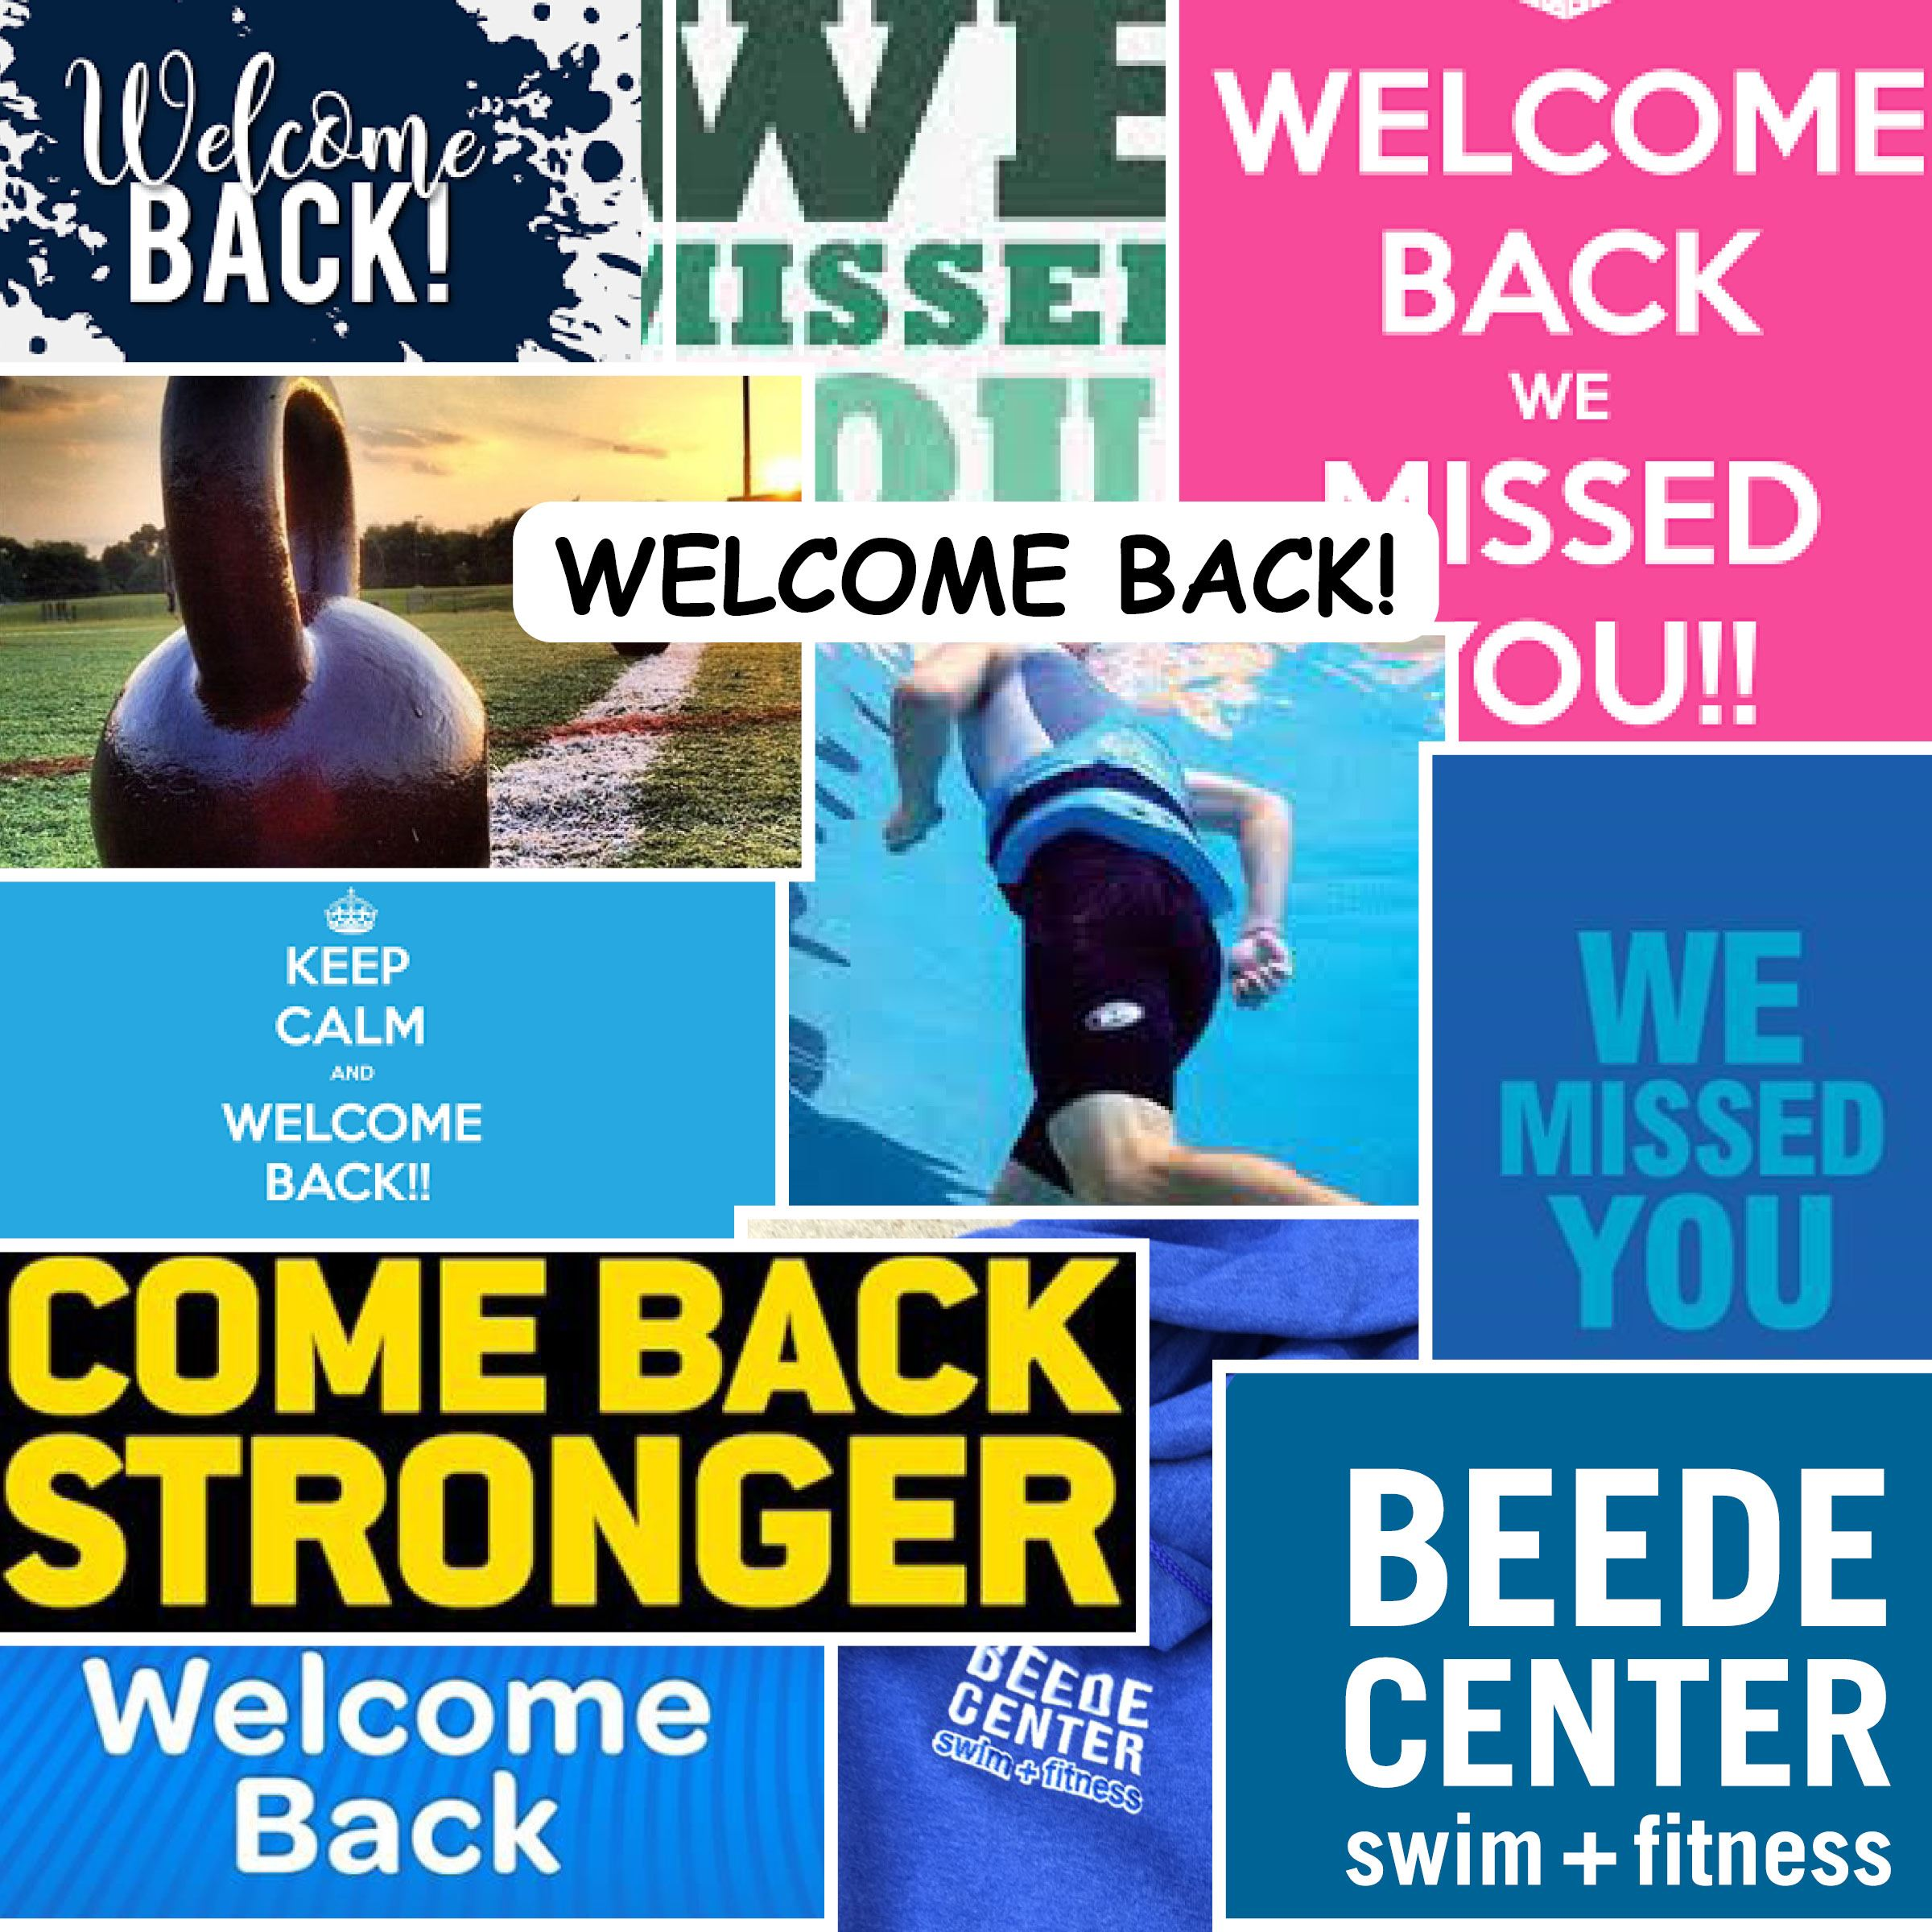 7-21-20 Collage-Beede Homepage